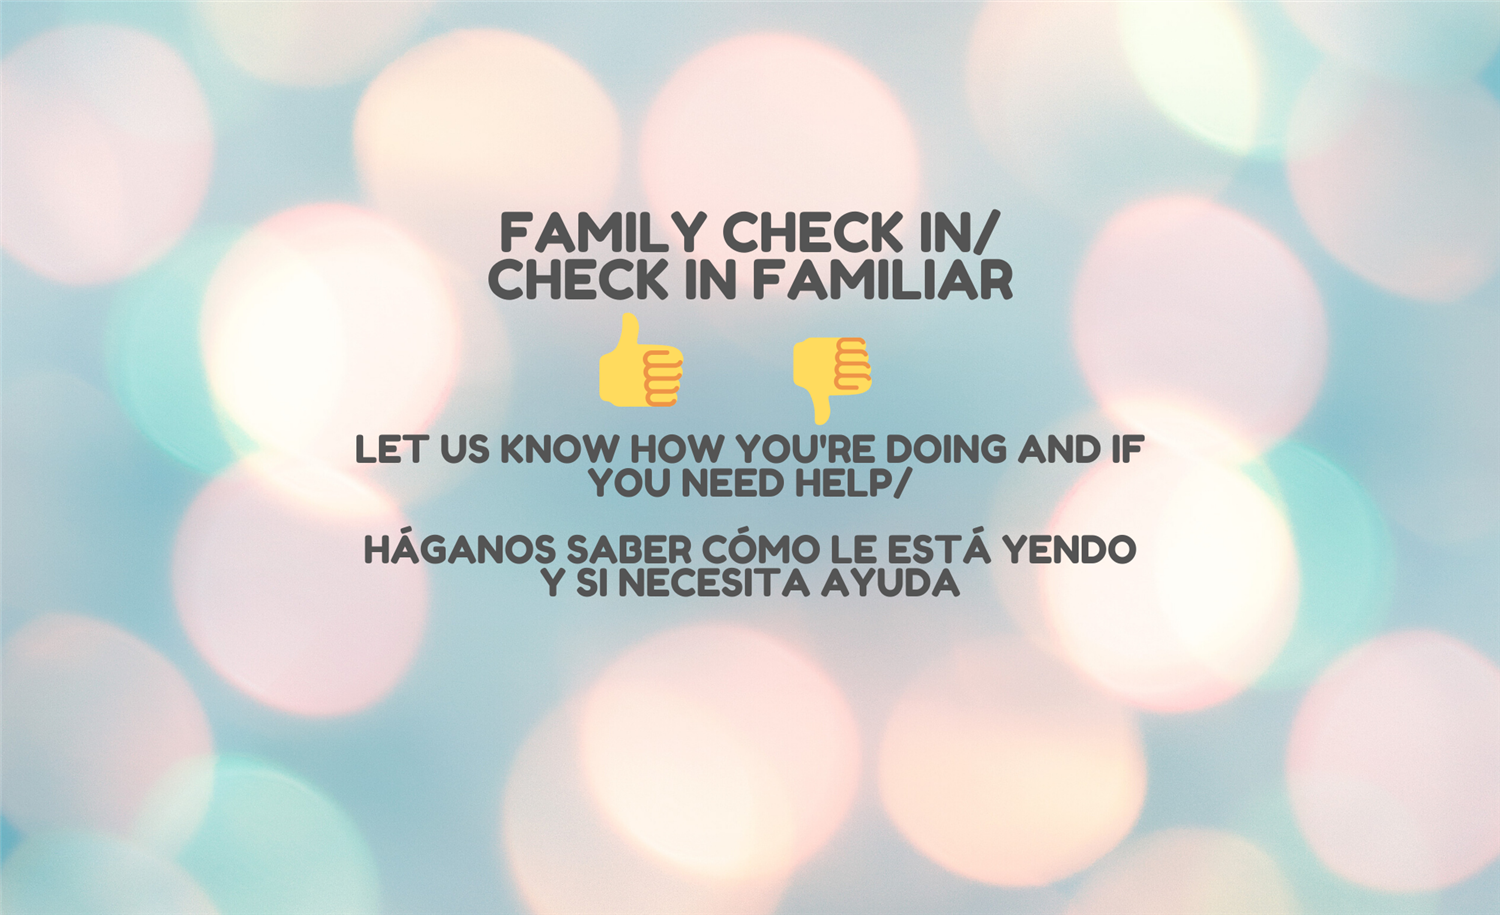 Family Check In/Check In Familiar